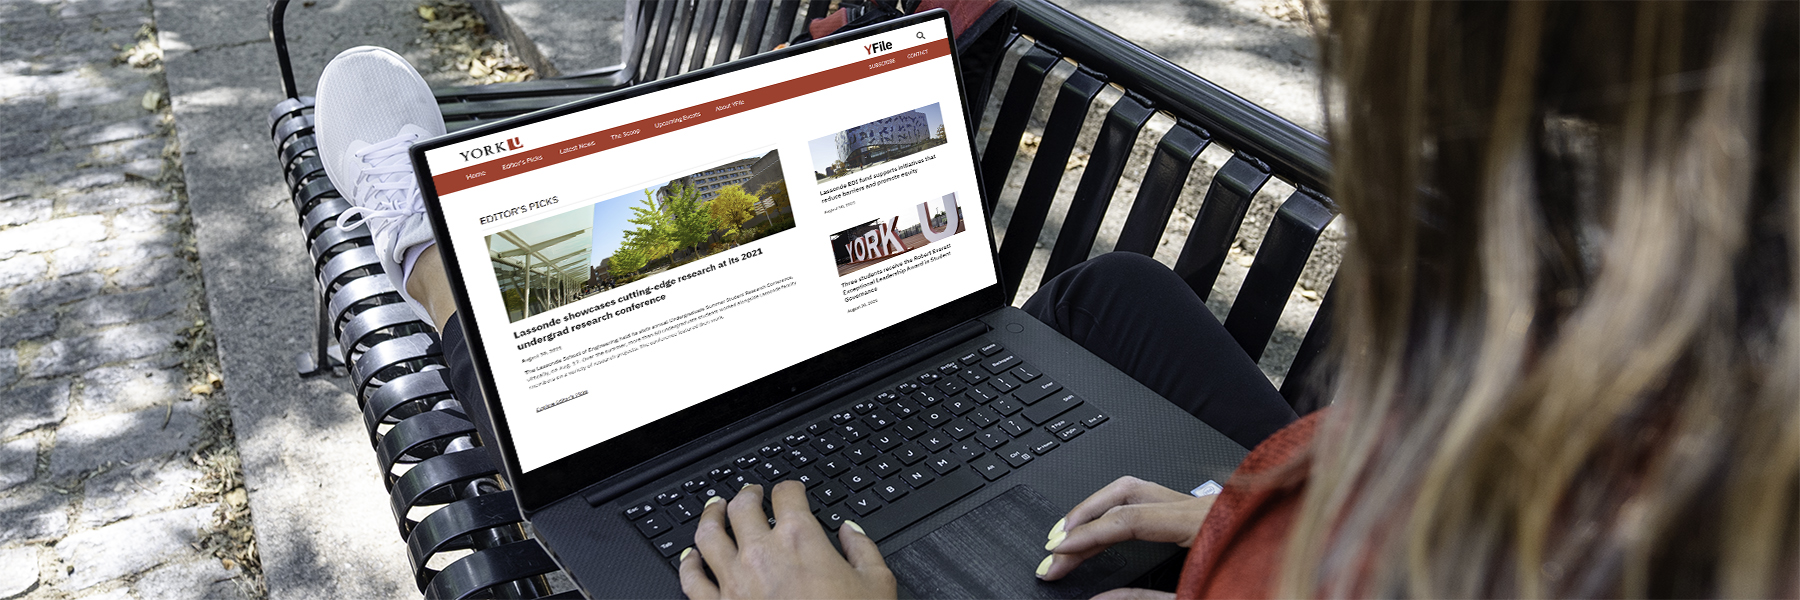 An image of a woman with a laptop that shows the YFile website